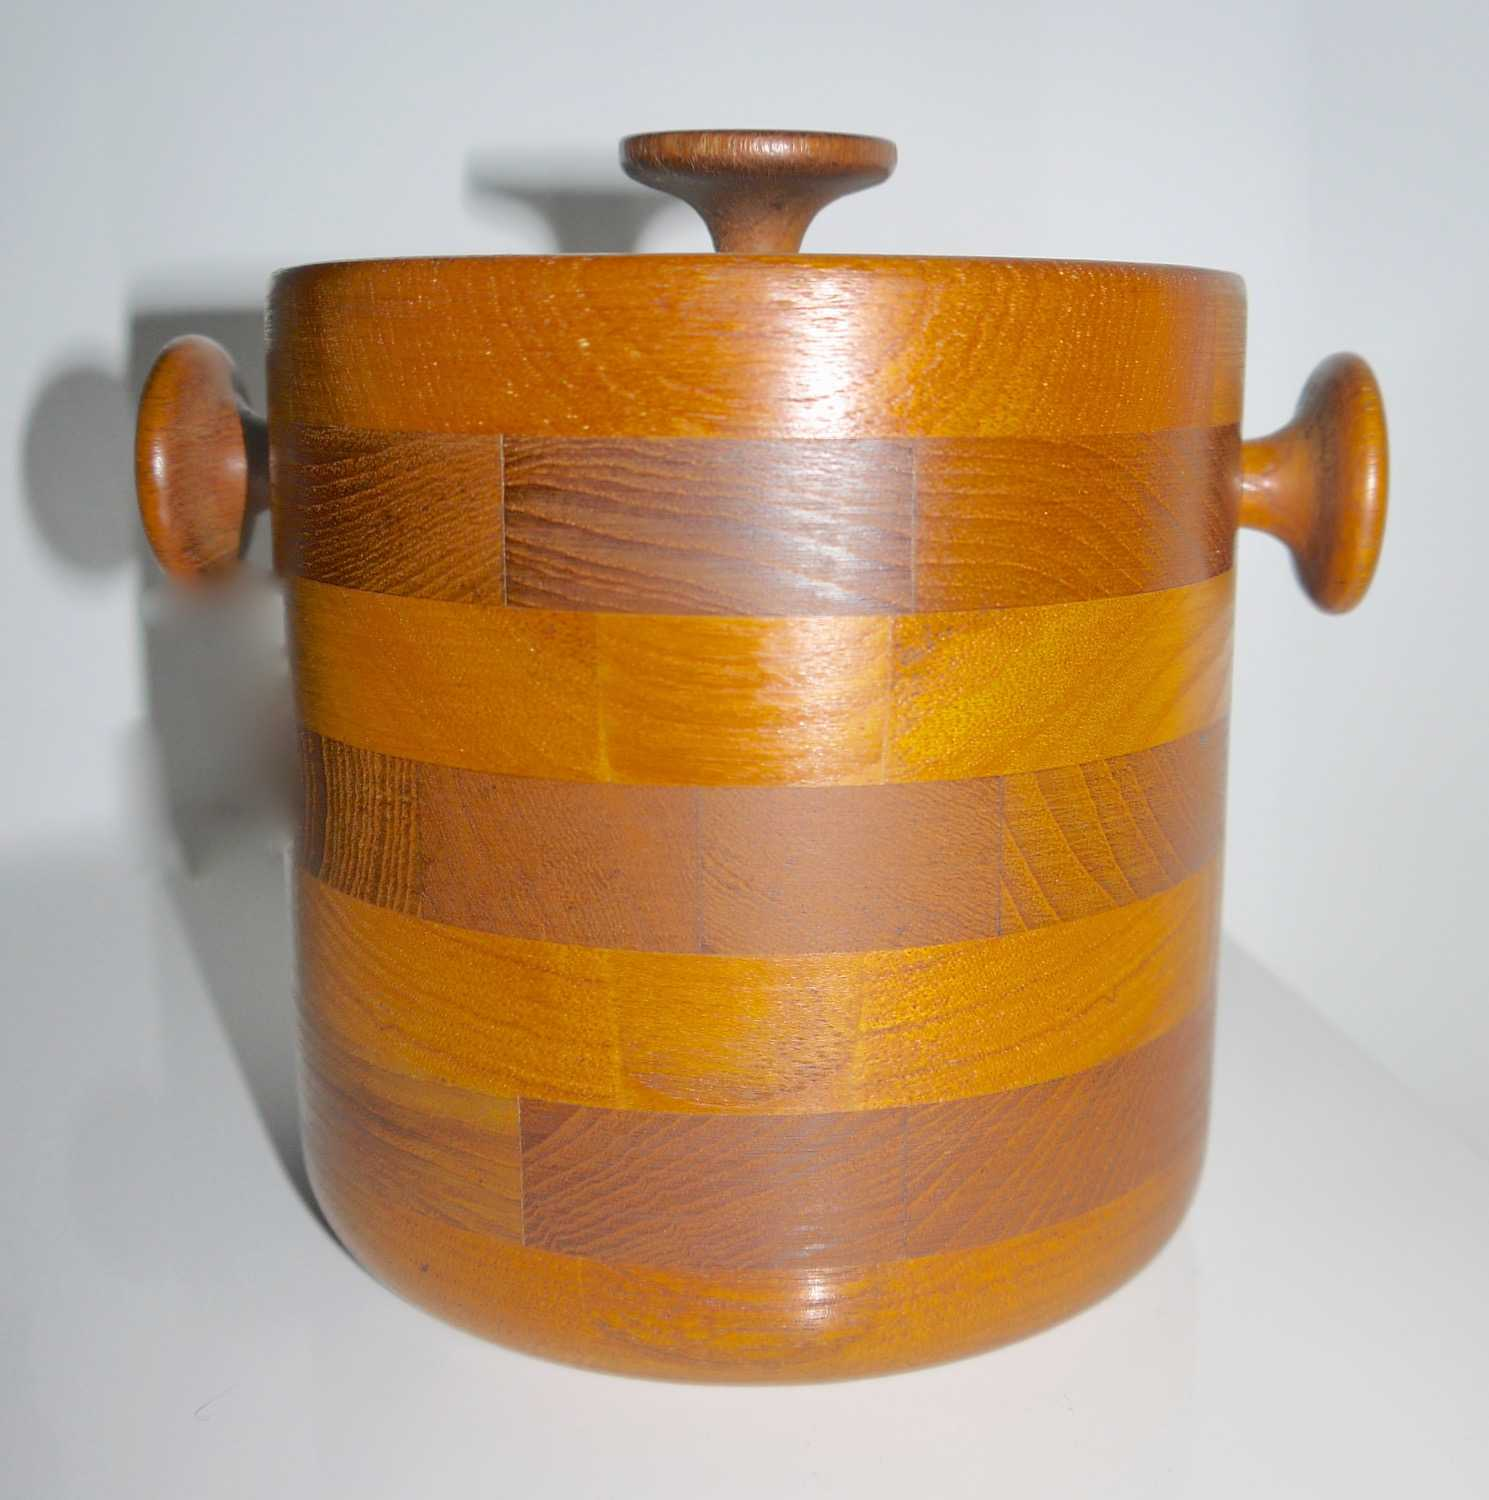 Viners 1960s table size Ice Bucket Teak and Stainless Steel 1960